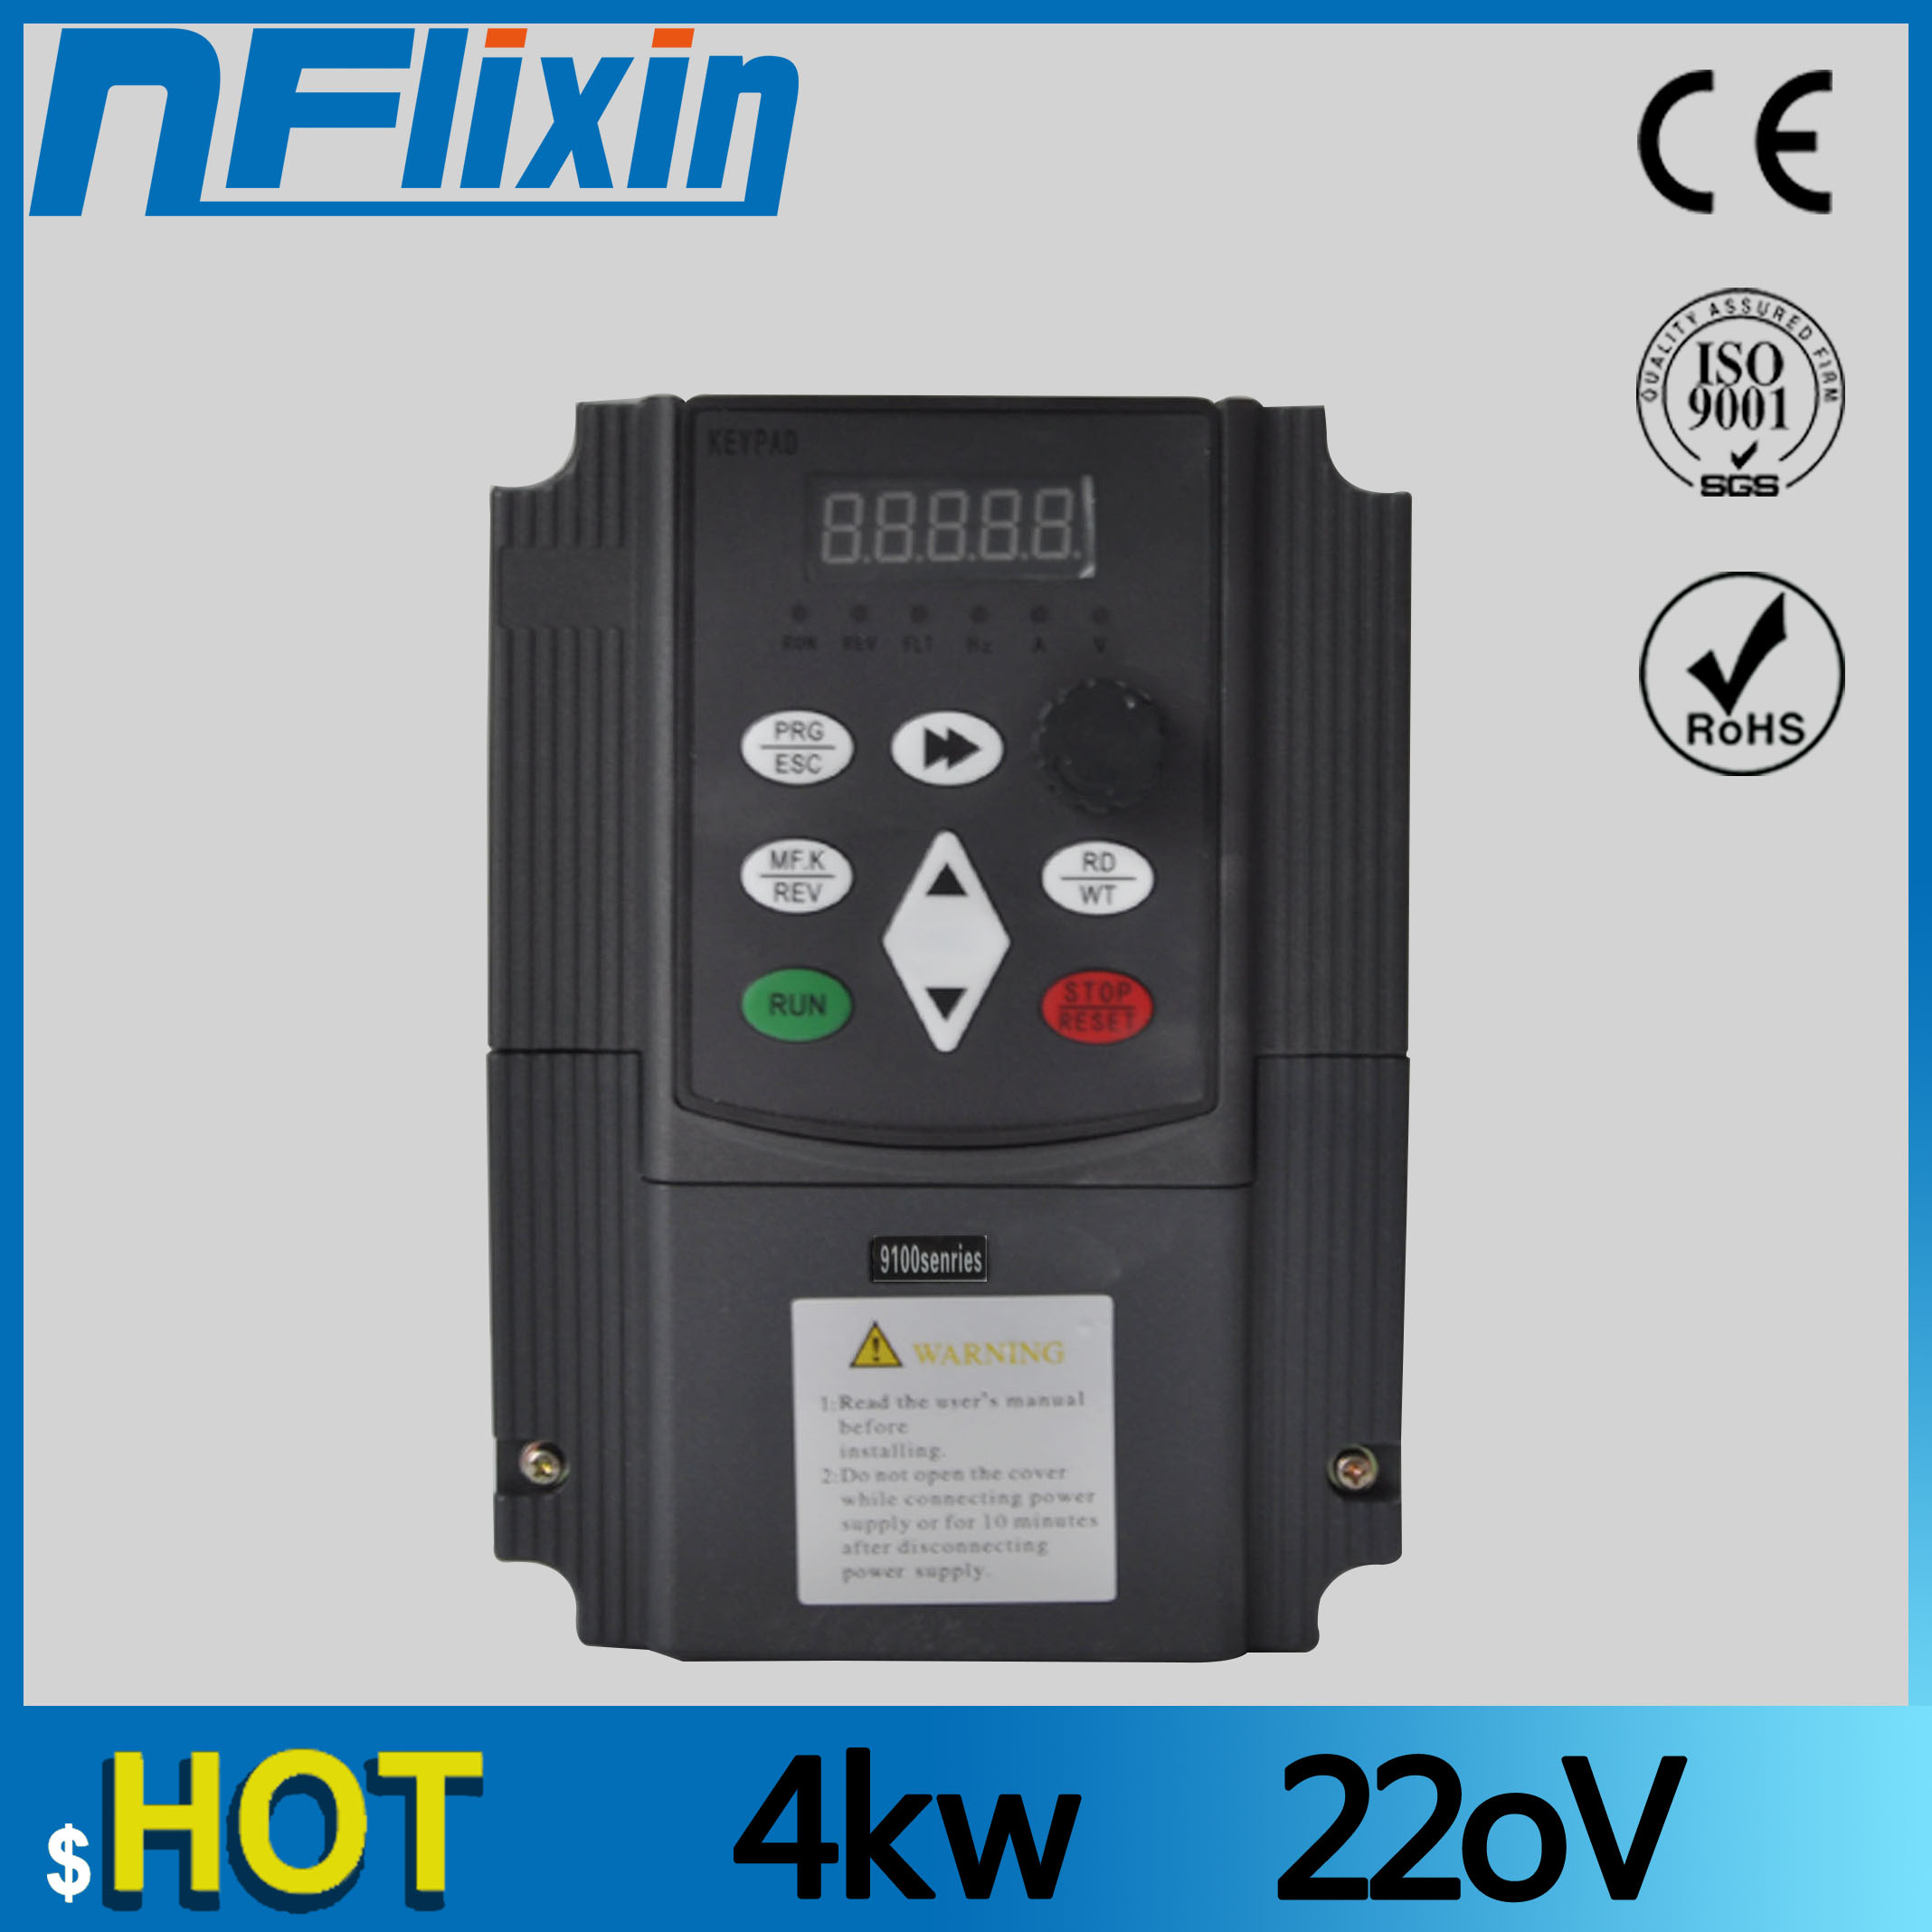 For Russian NF 220v 4kw 1 phase input and 220v 3 phase output frequency converter/ac motor drive/VSD/VFD/50HZ Inverter invertersFor Russian NF 220v 4kw 1 phase input and 220v 3 phase output frequency converter/ac motor drive/VSD/VFD/50HZ Inverter inverters